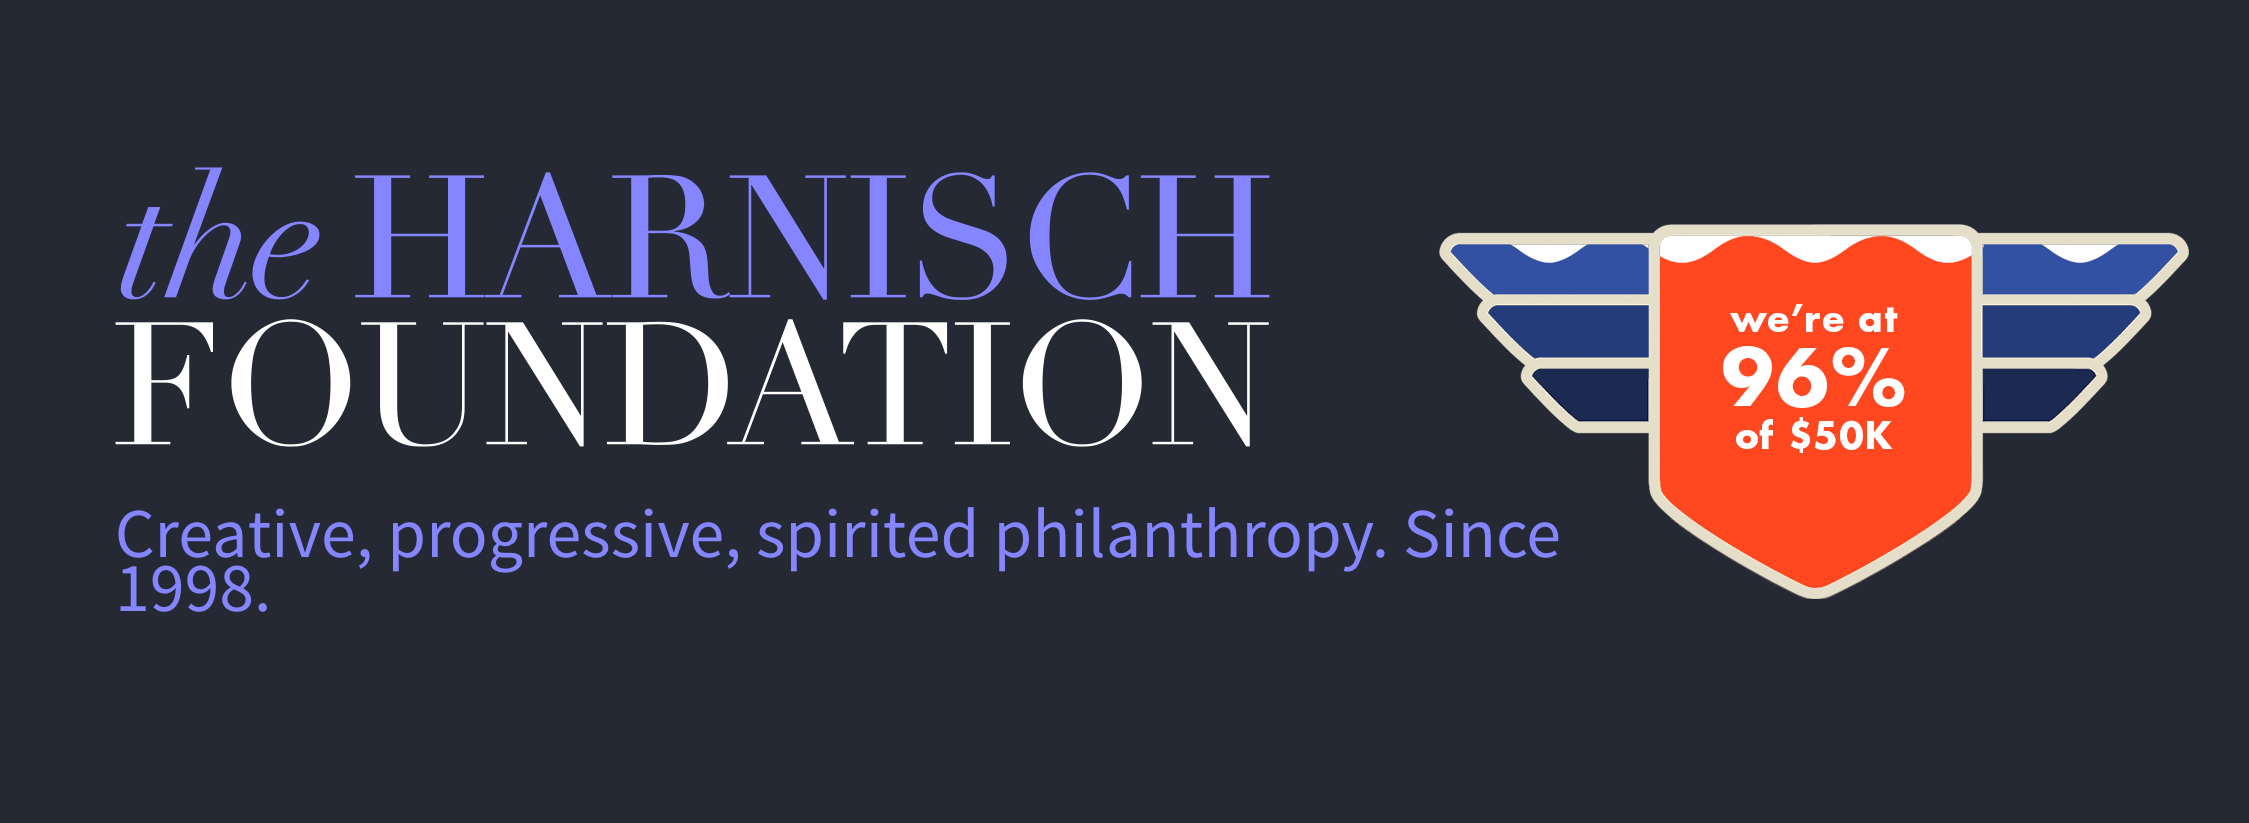 harnisch-foundation.png